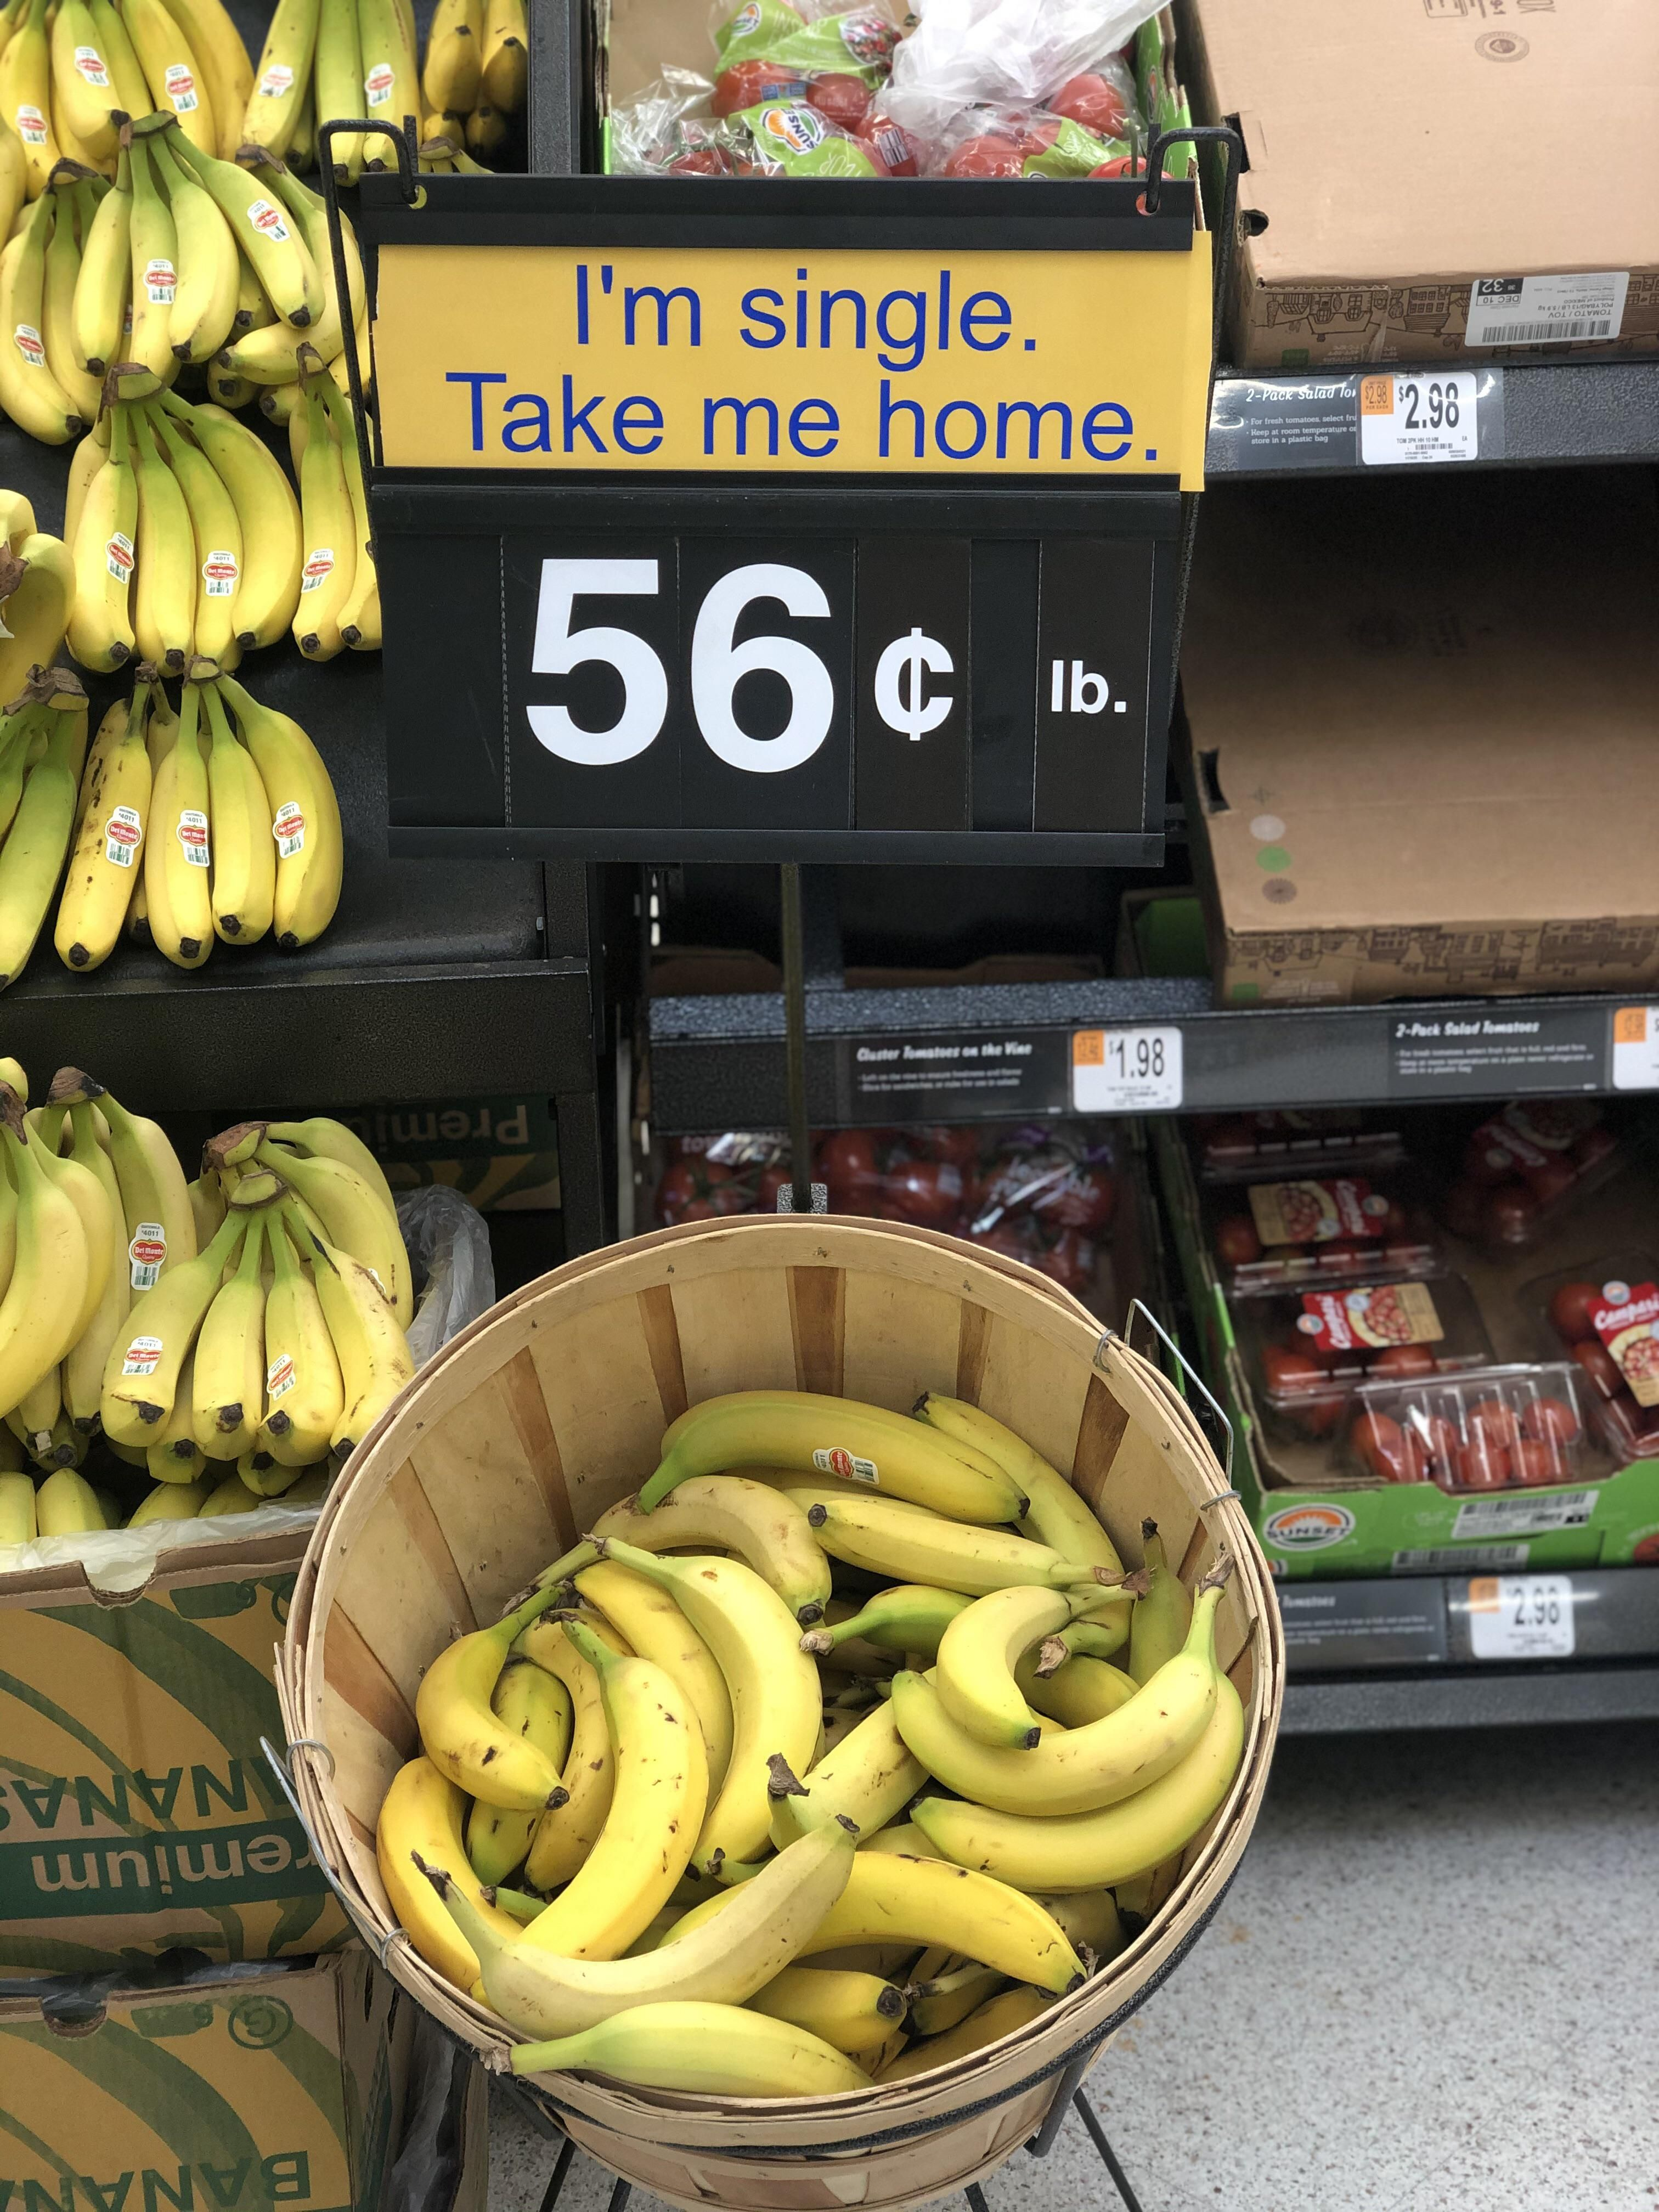 Saw this sign at the grocery store today